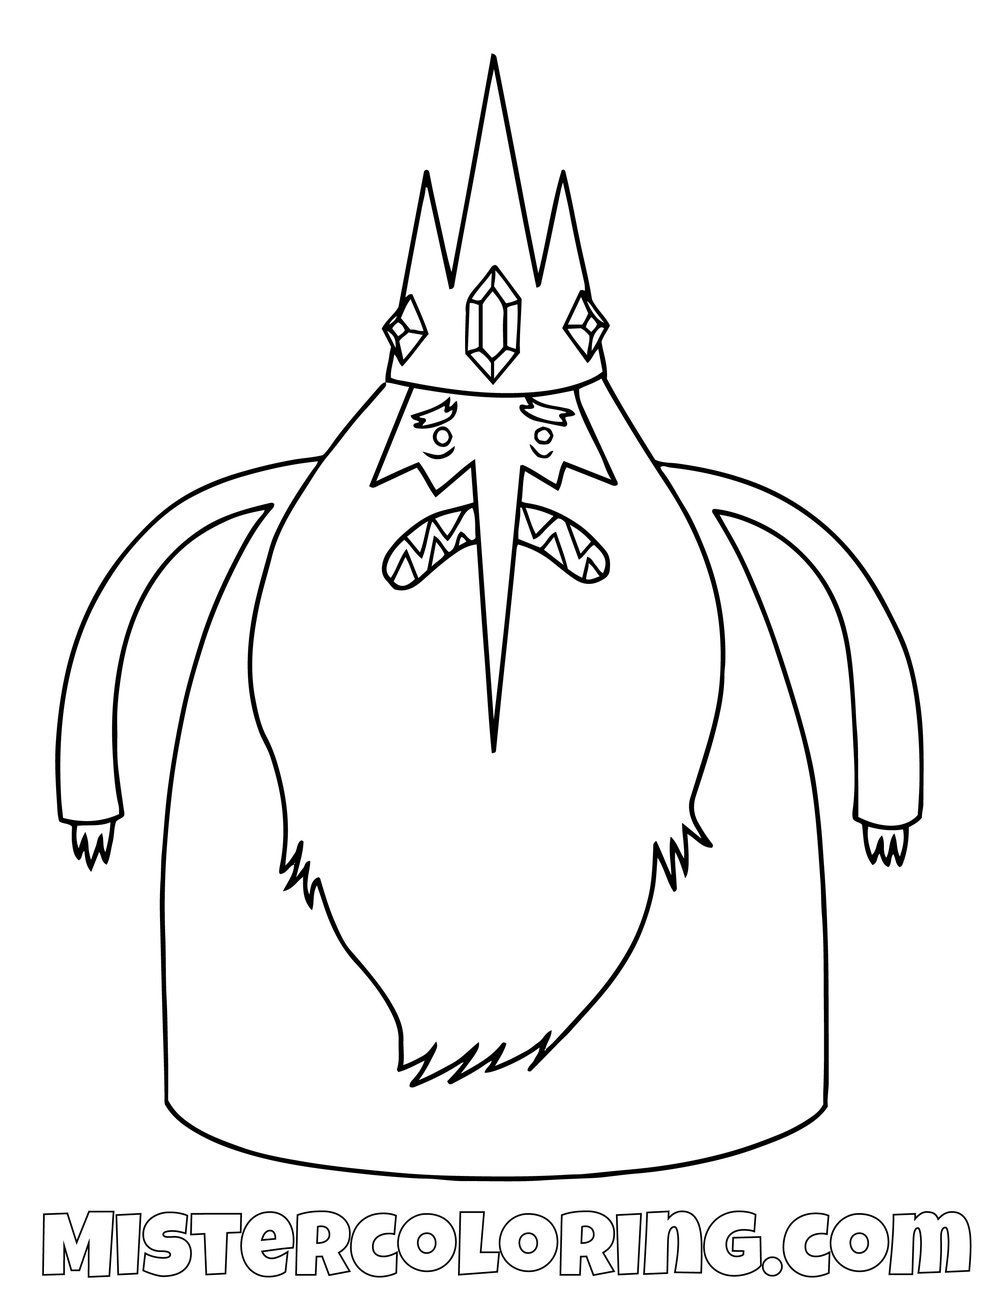 Ice King Adventure Time Coloring Page Adventure Time Coloring Pages Ice King Adventure Time Adventure Time Drawings